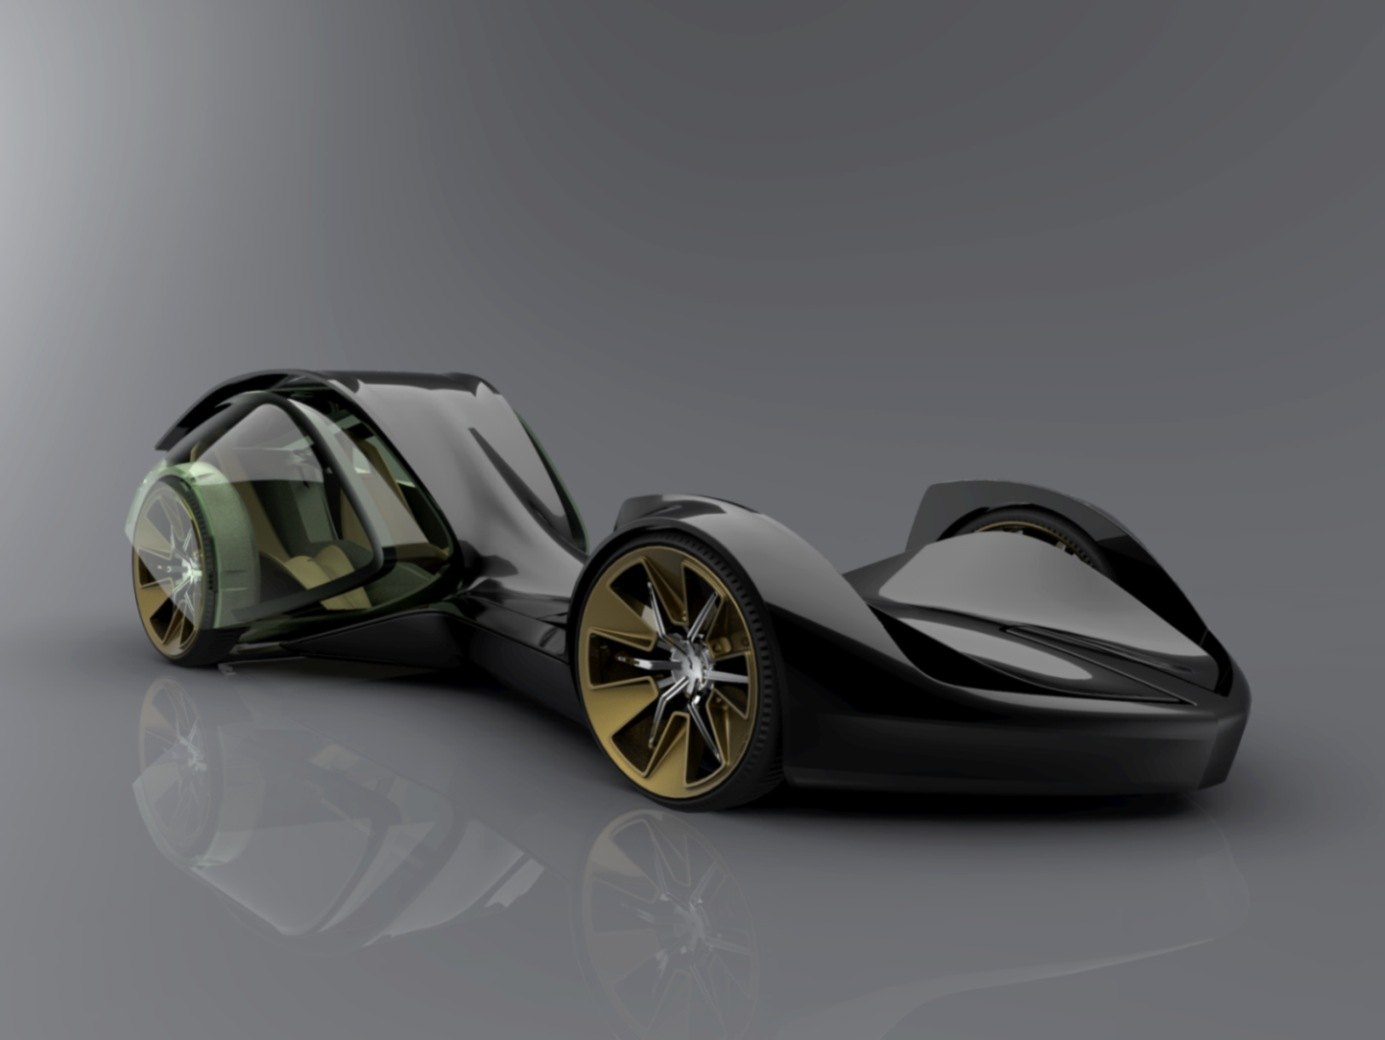 Influx Showcases New Car Designers The Publicity Works